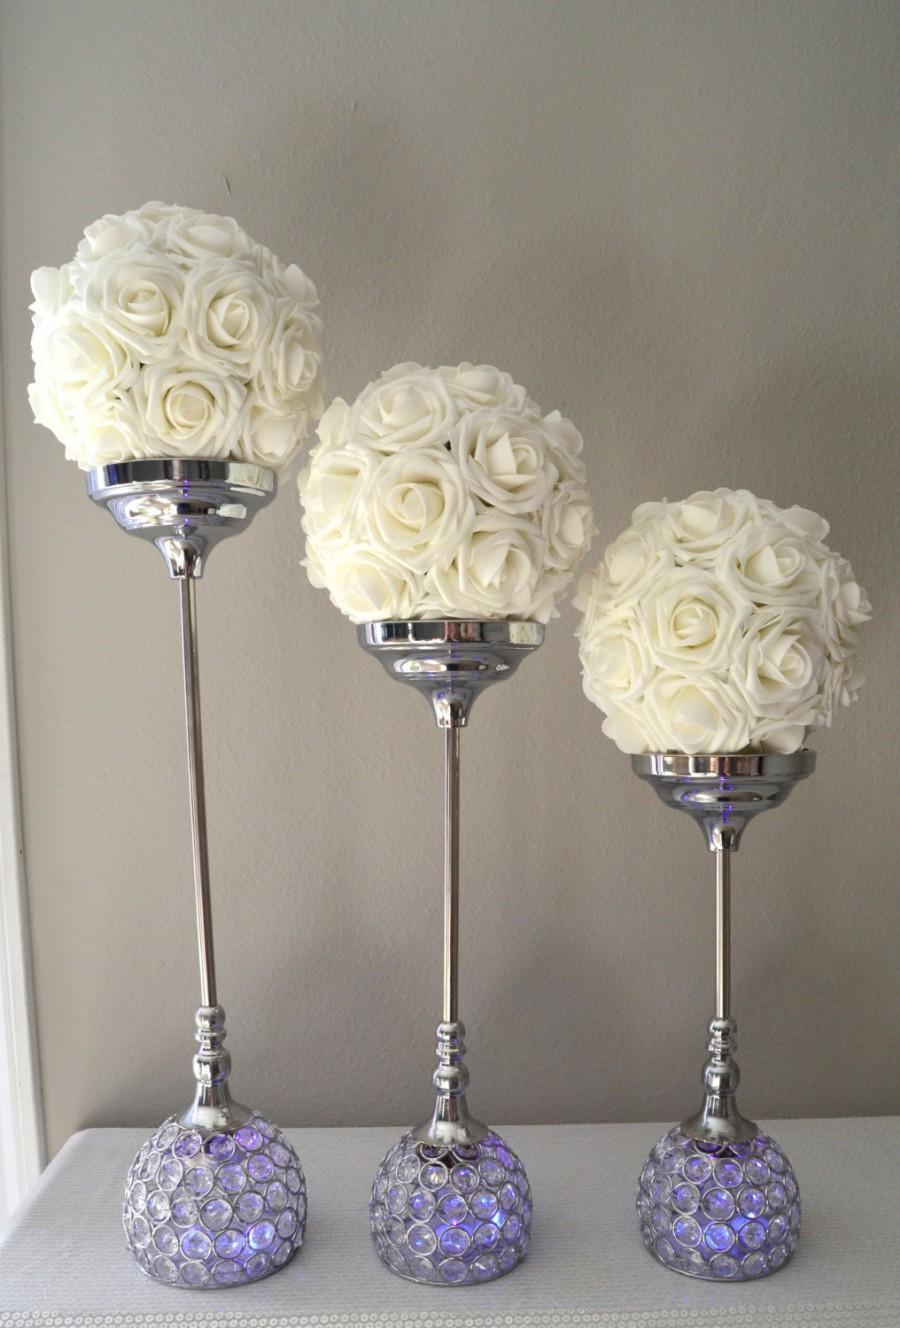 comely home wedding ideas. Crystal Candle Holder SET OF 3 Silver Bling Rhinestone Flower Ball Stands  Wedding Centerpiece Goblet